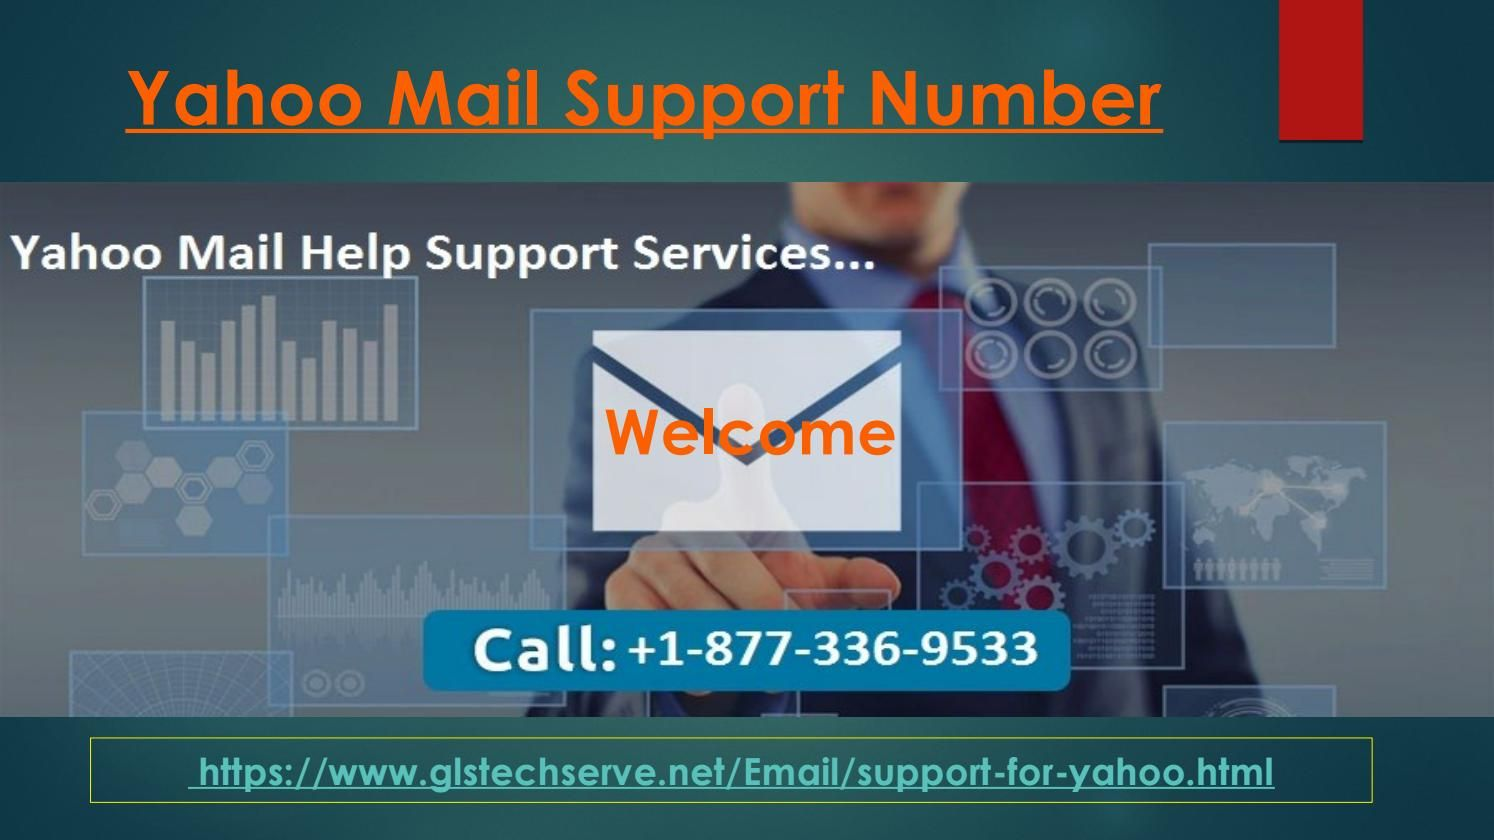 are 1 877 numbers free to call in canada